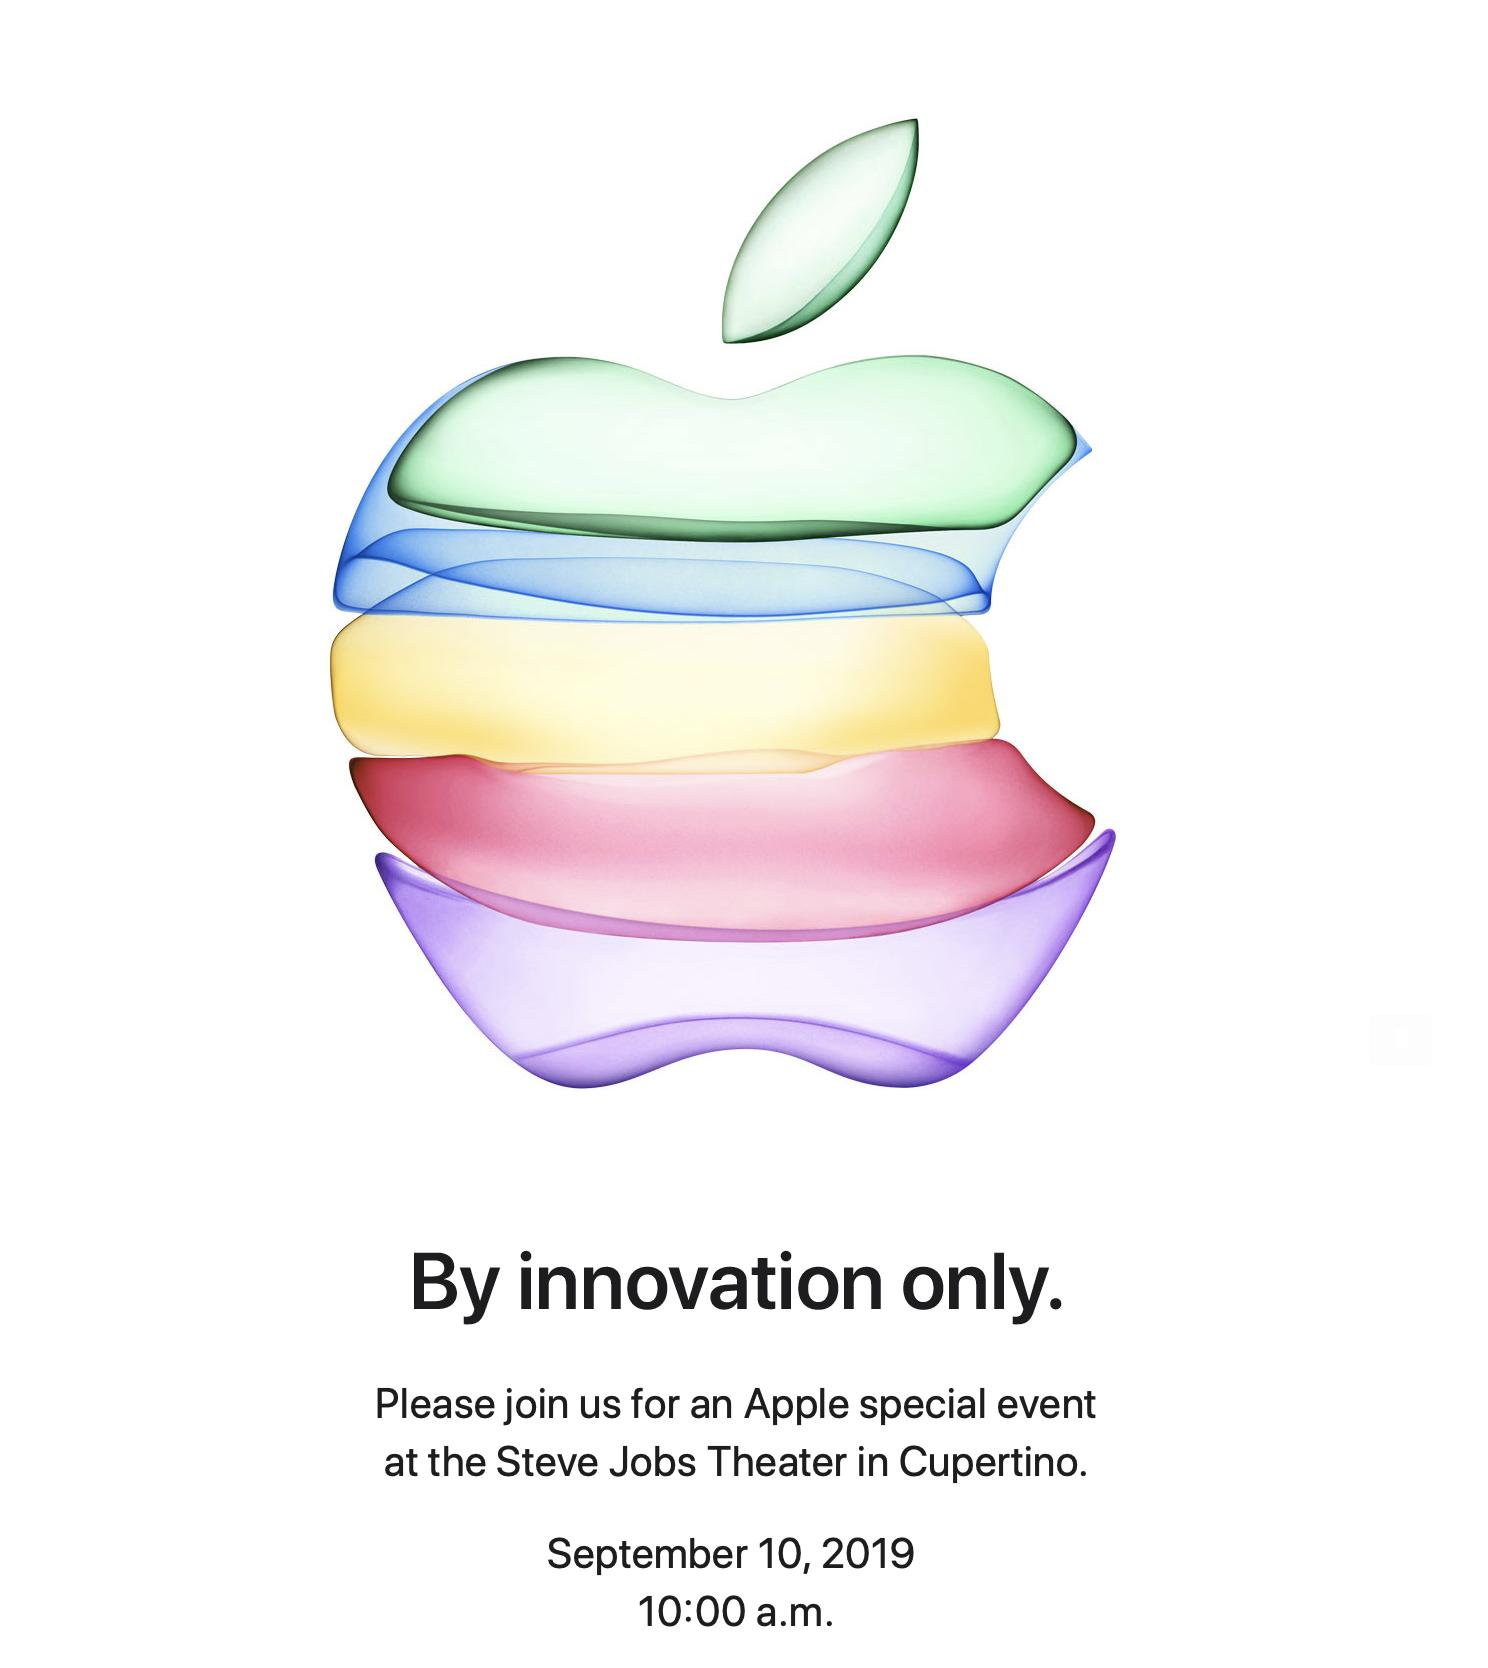 Apple's 'By Innovation Only' Invitations Confirms iPhone Event to be Held Sept. 10